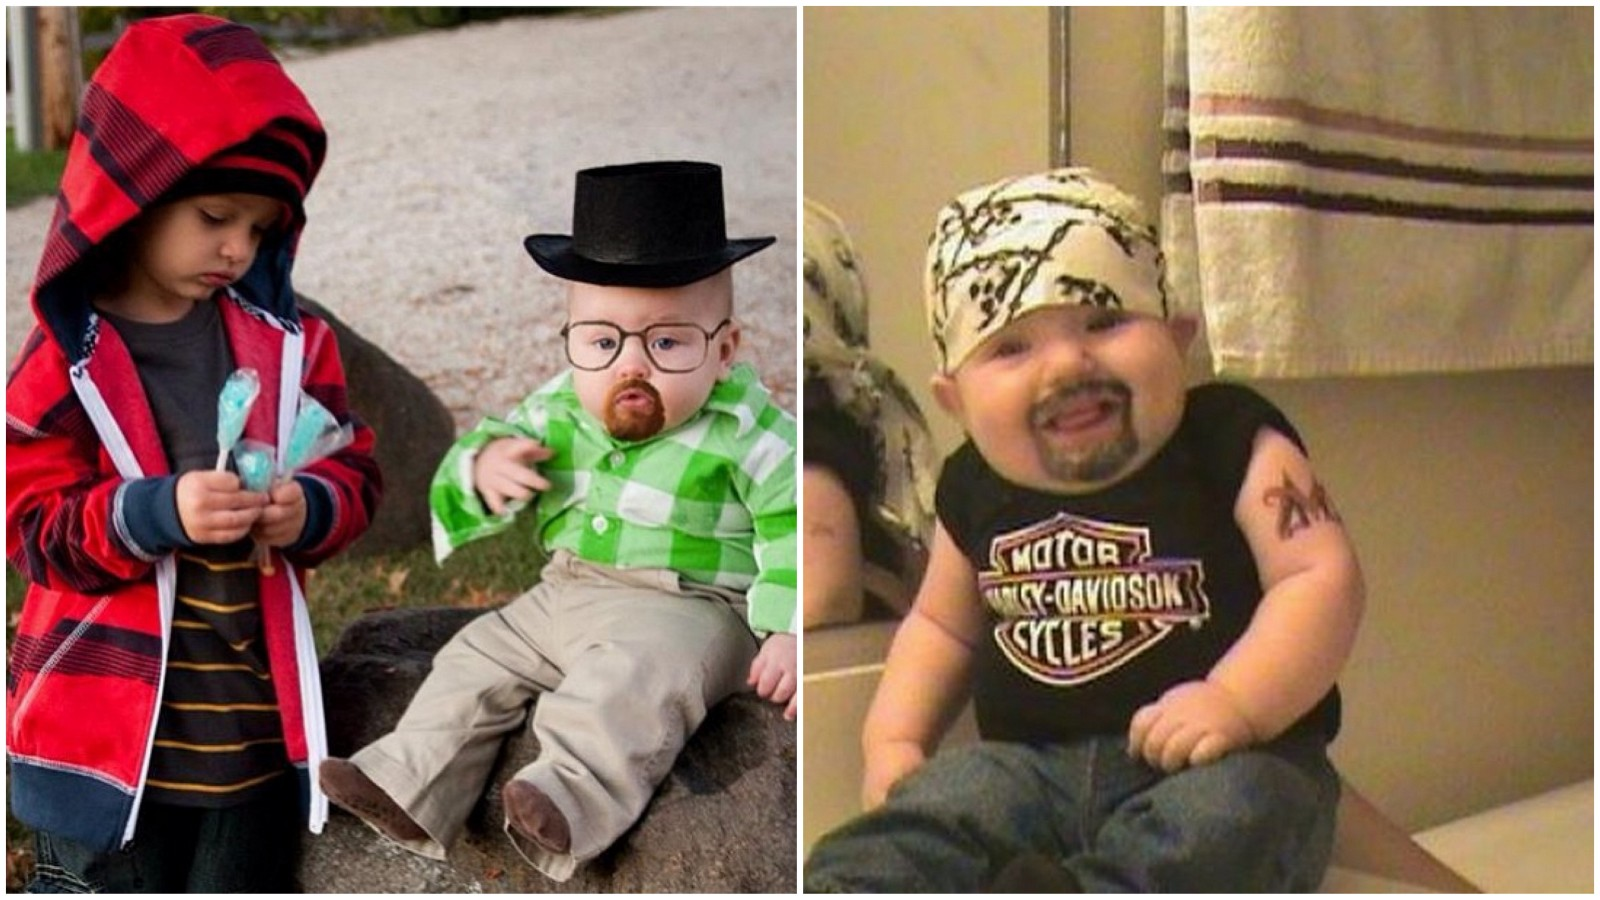 Most Shocking Extremely Funny Halloween Baby